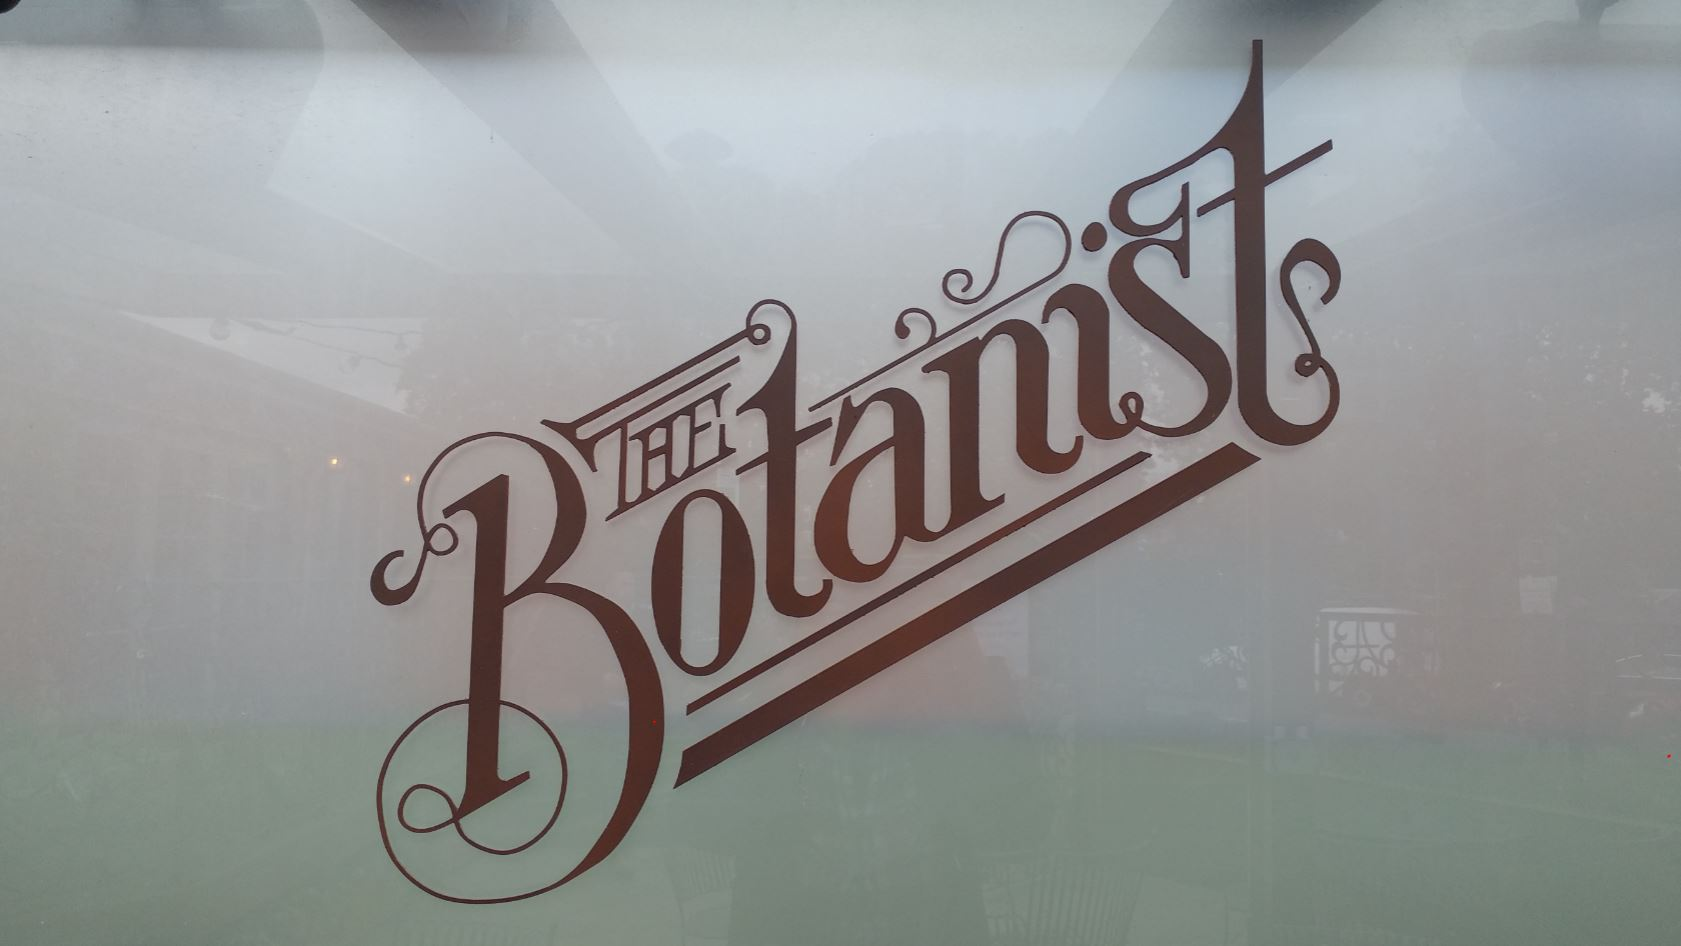 RESTAURANT REVIEW: THE BOTANIST, WEST BRIDGFORD, NOTTINGHAM